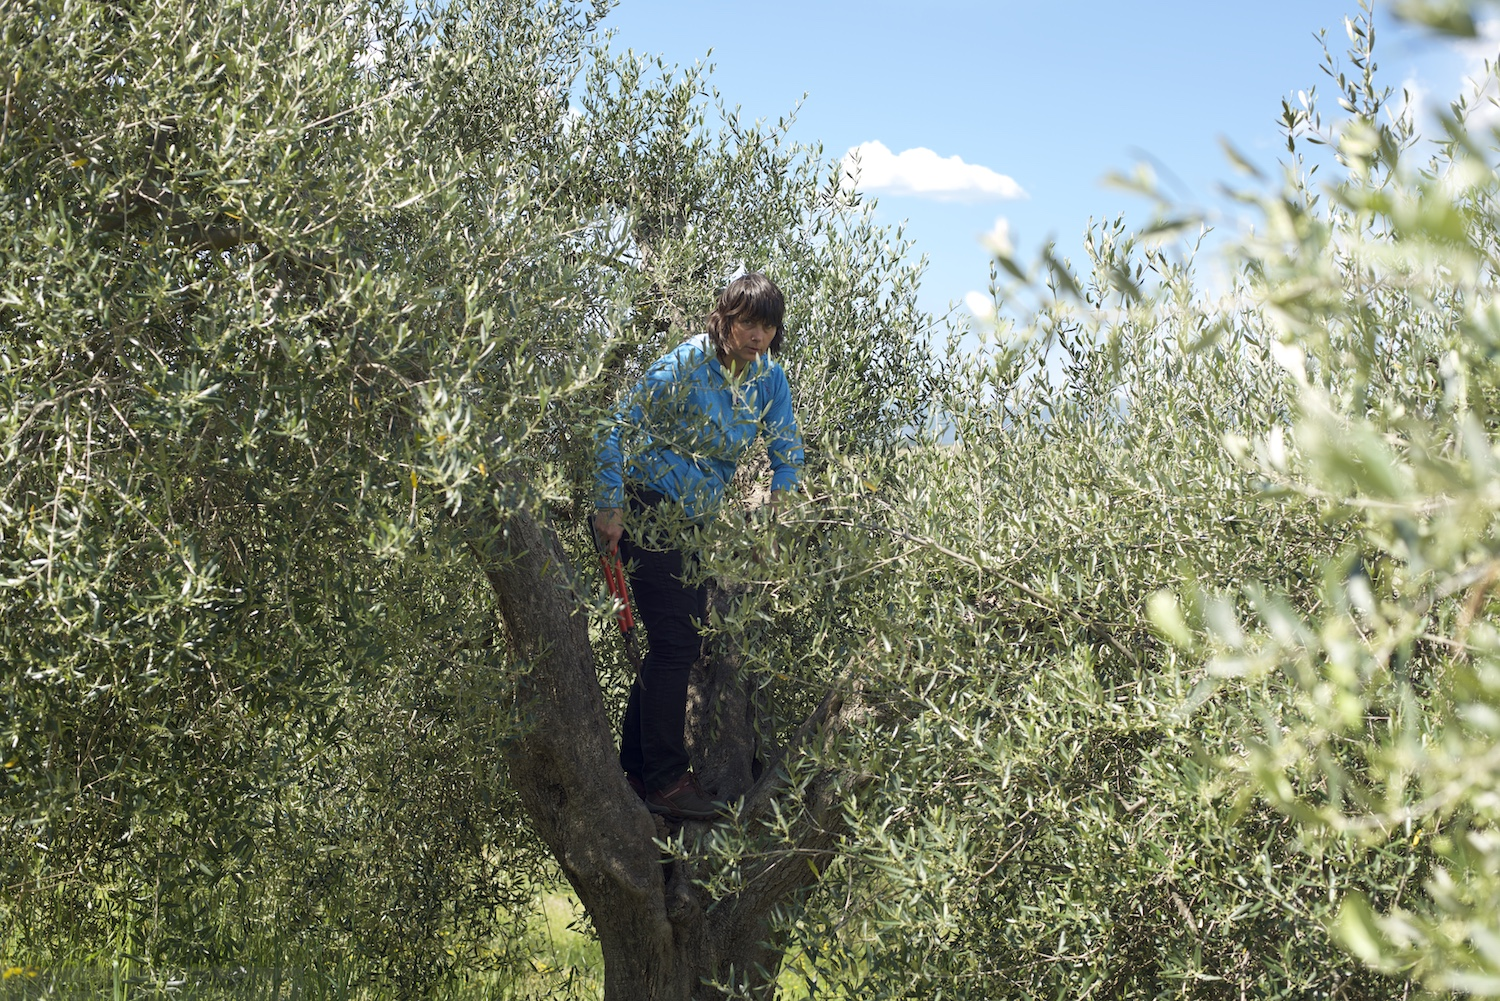 Rudy in the olive grove during pruning